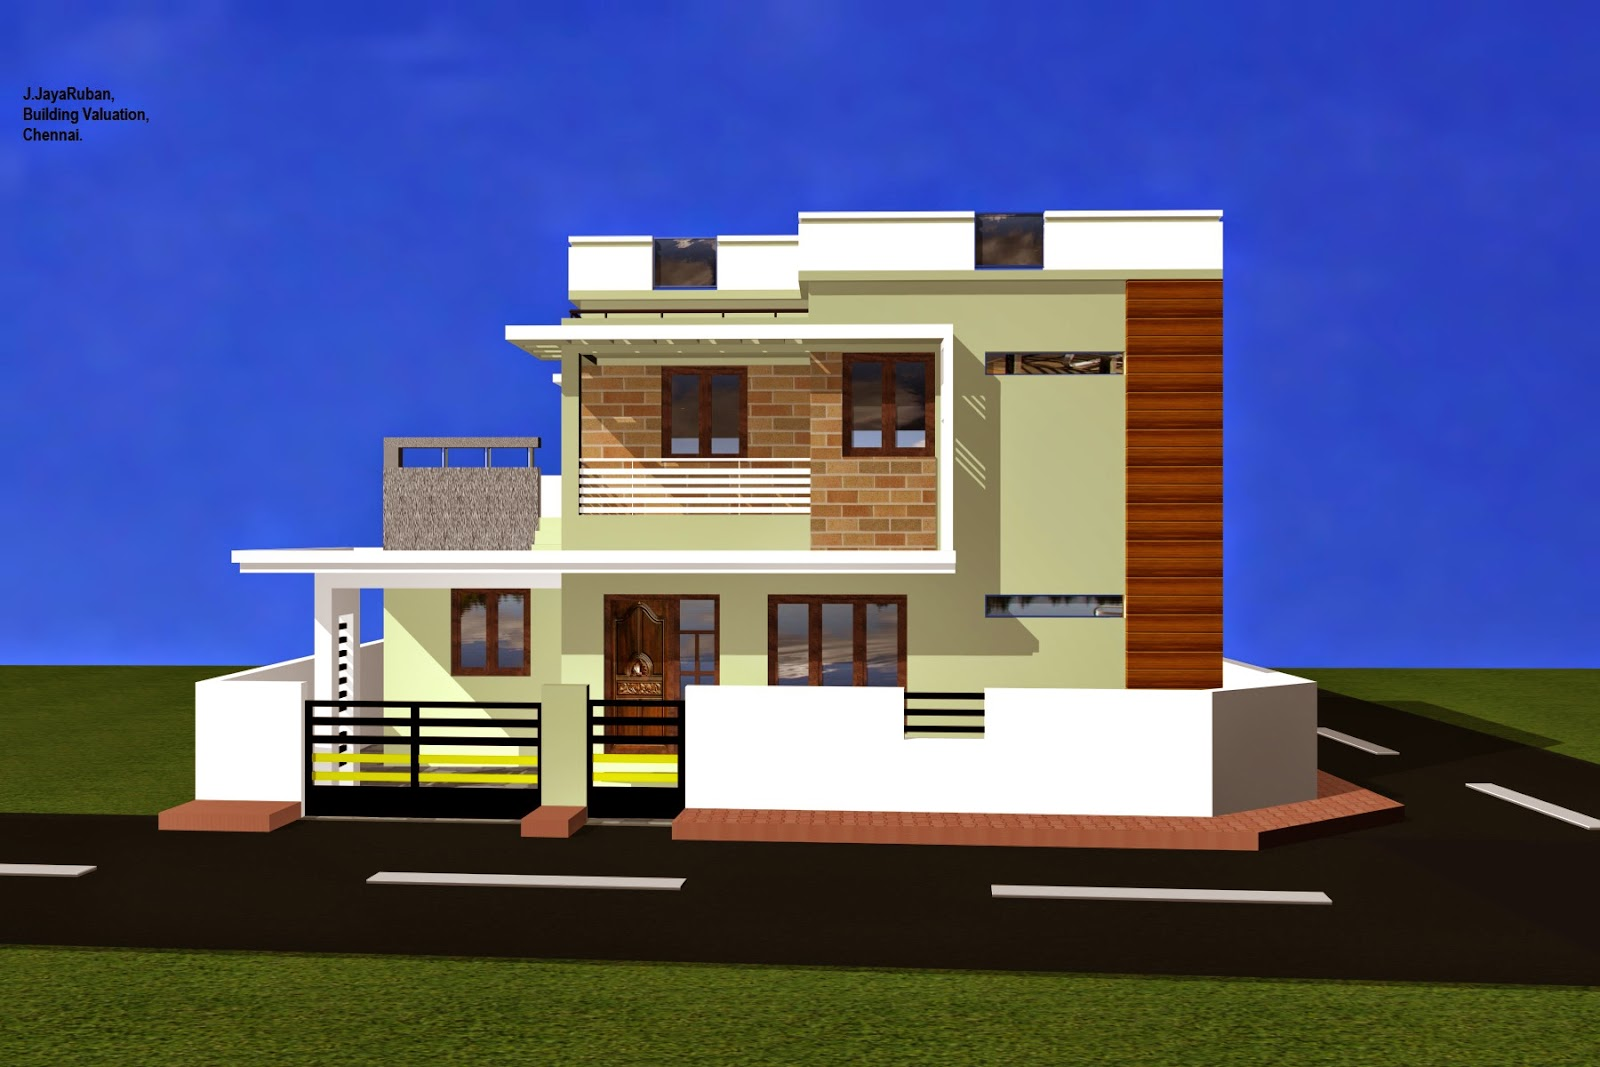 Elevations of residential buildings joy studio design for Elevation plans for buildings